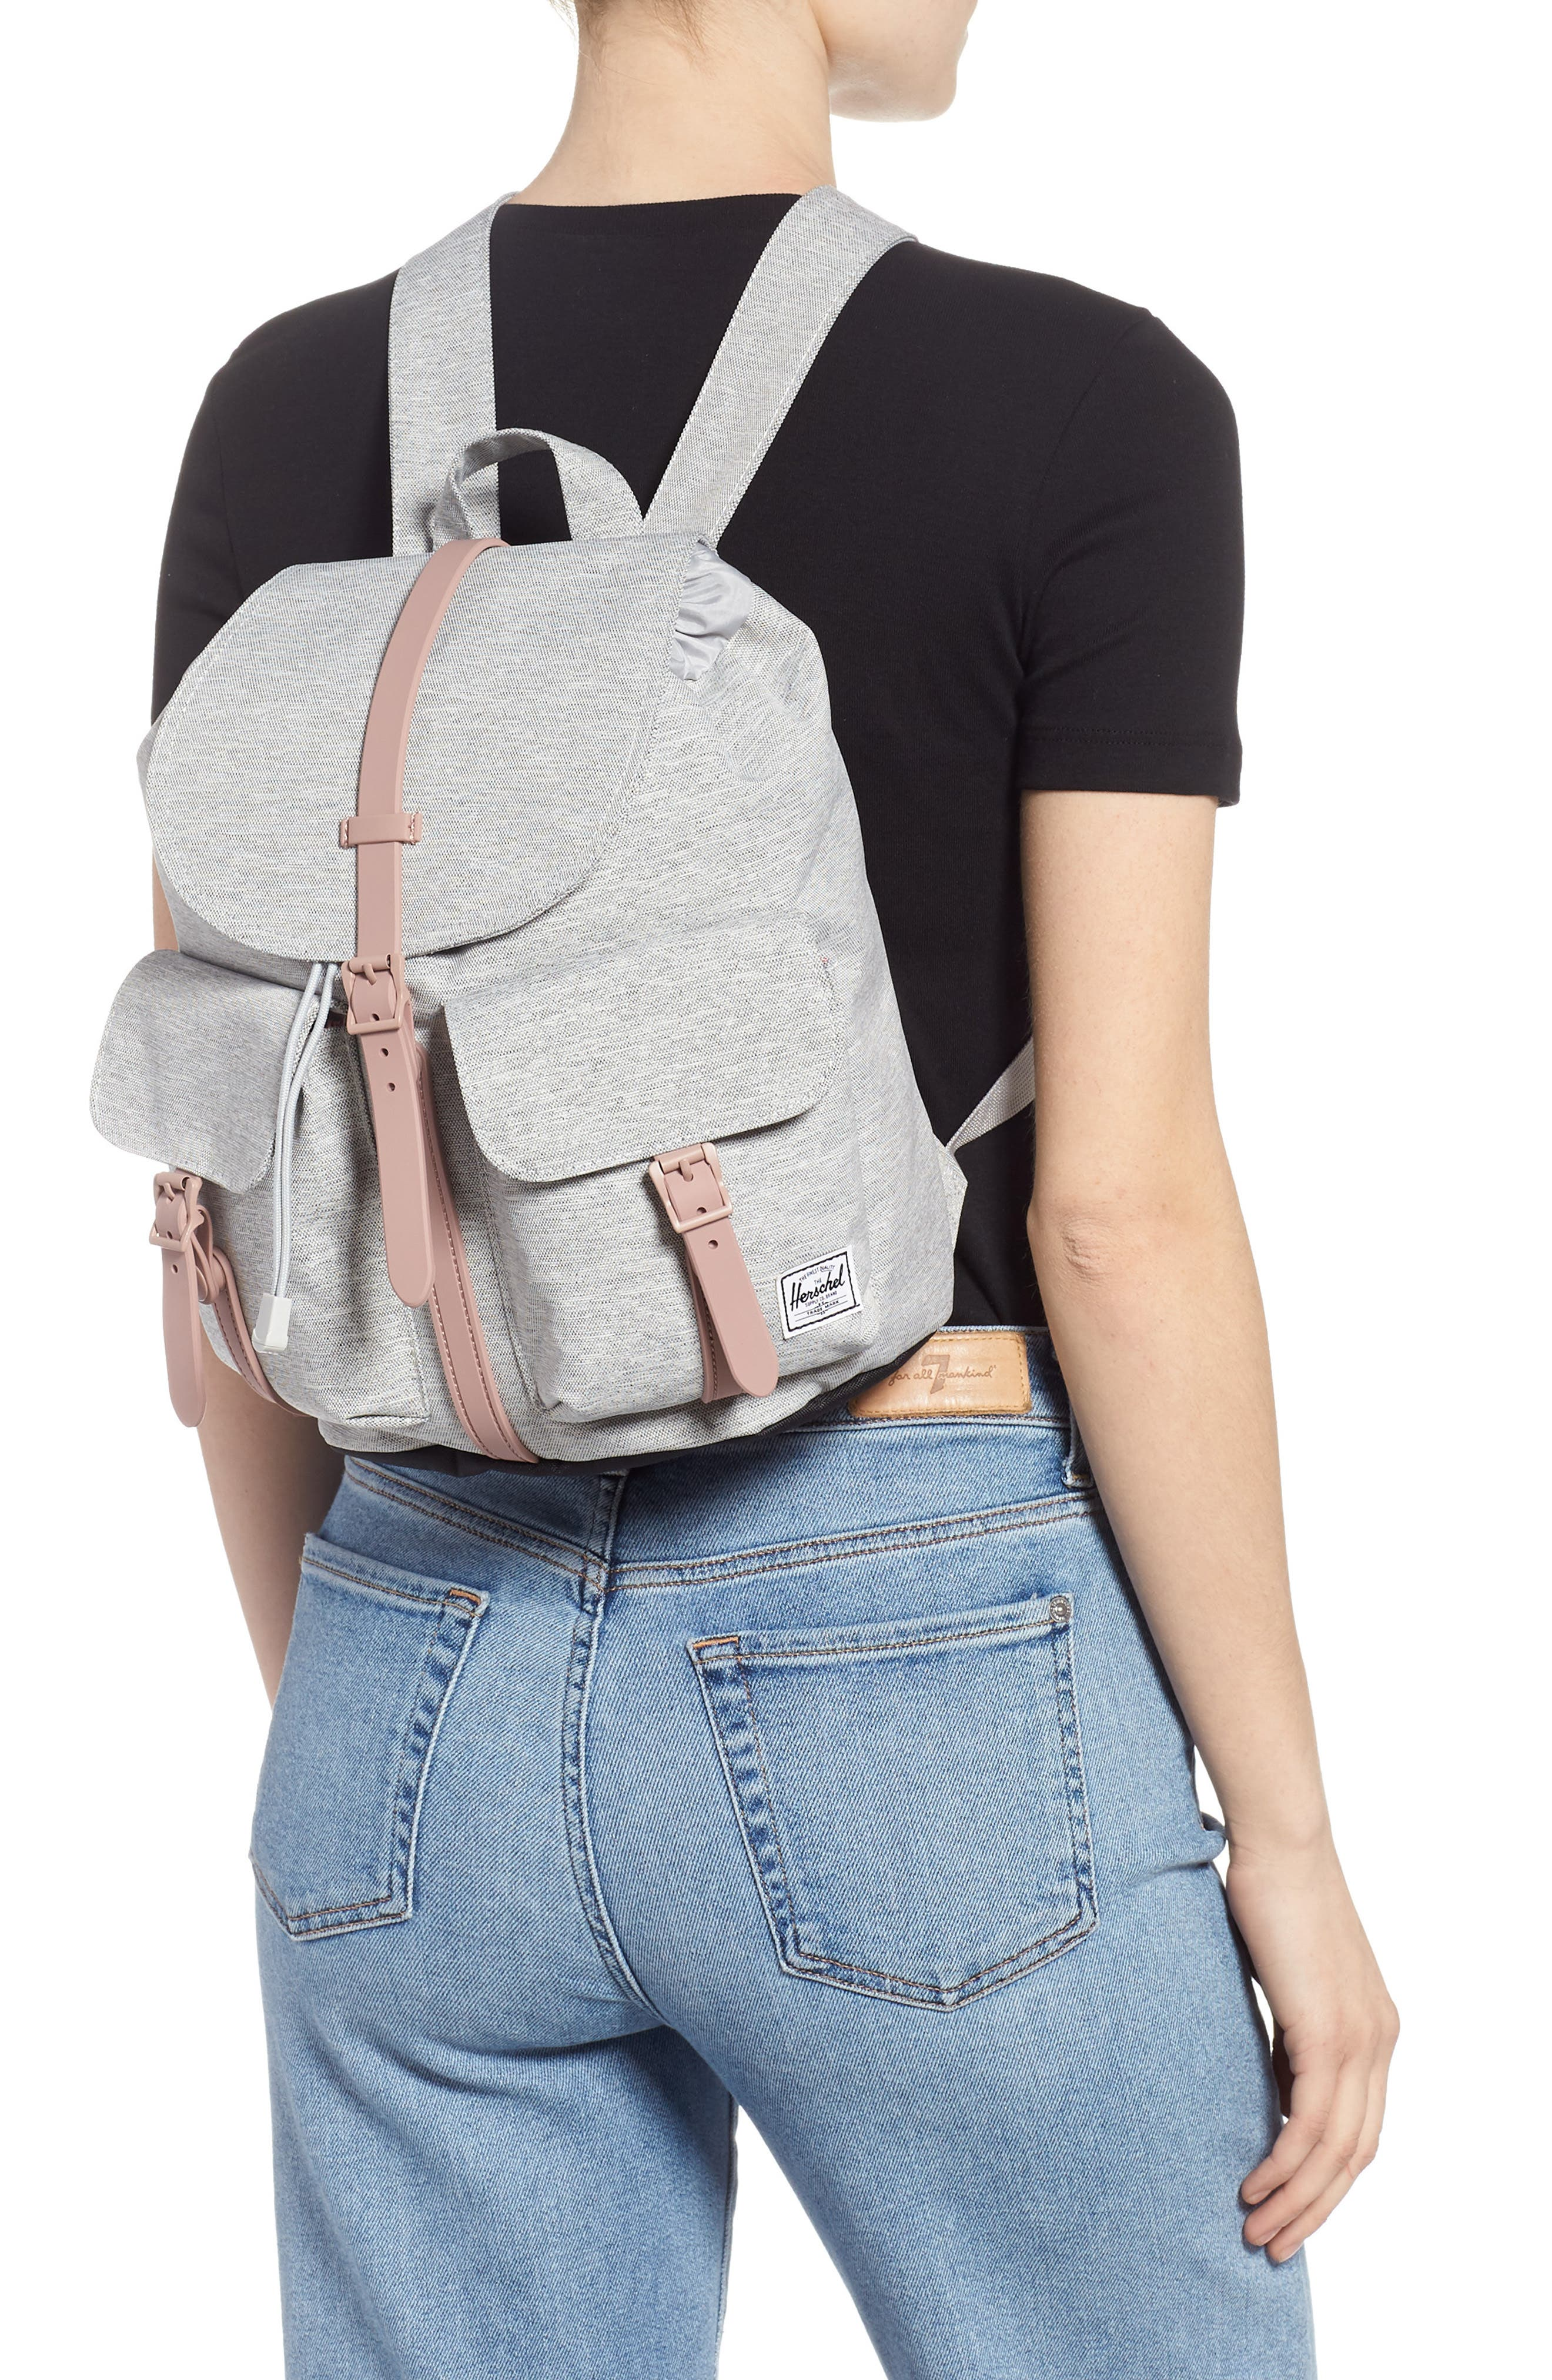 X-Small Dawson Backpack,                             Alternate thumbnail 2, color,                             LIGHT GREY/ ASH ROSE/ BLACK